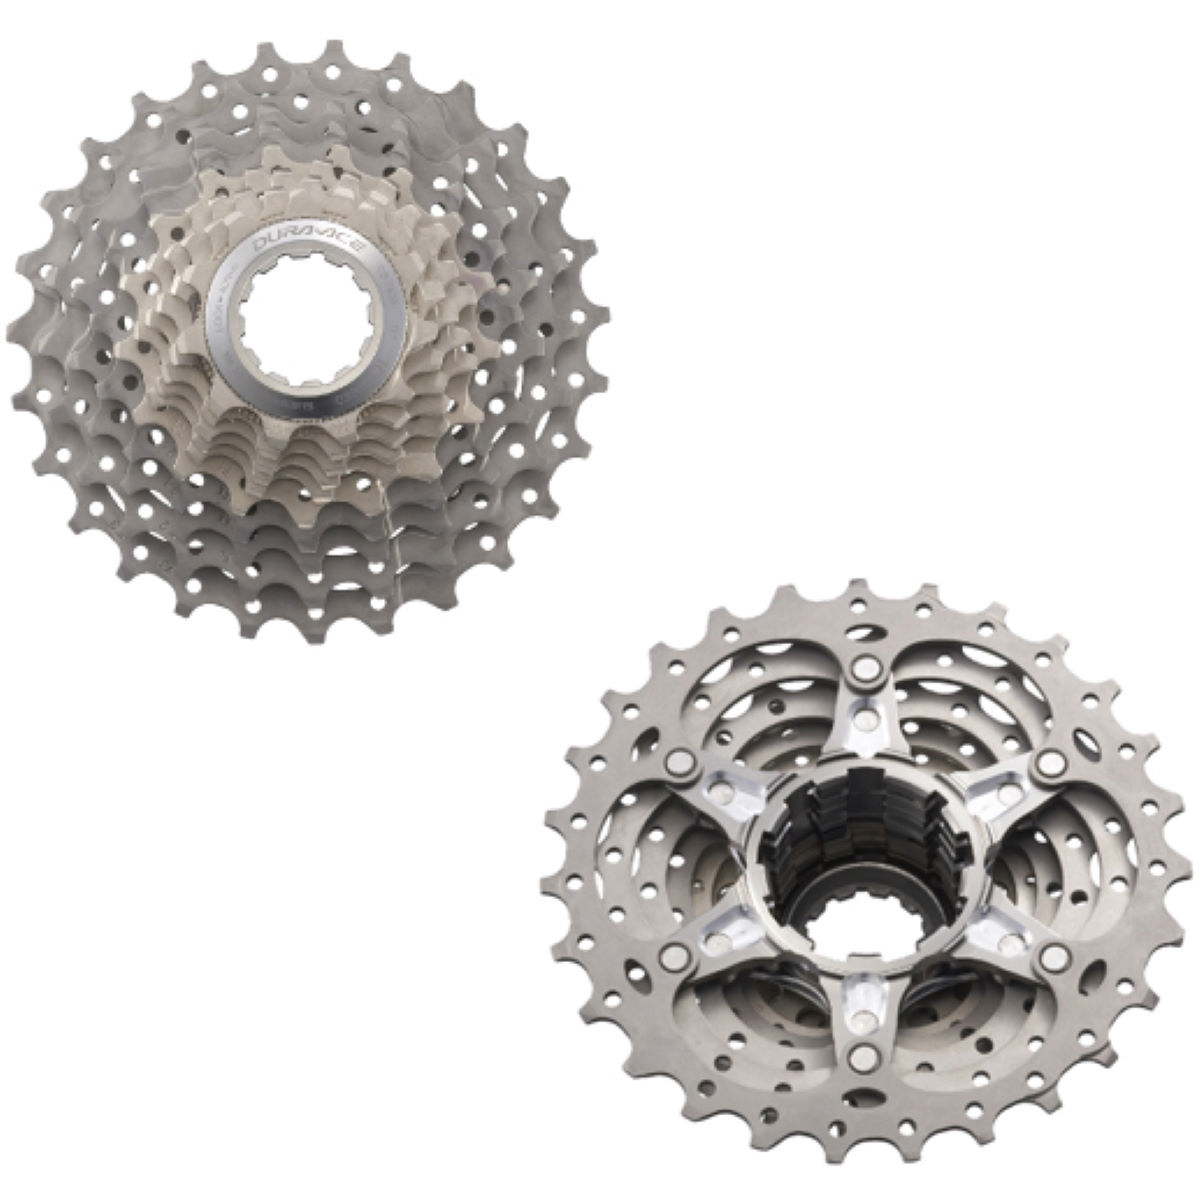 Shimano Dura Ace 7900 10 Speed Cassette